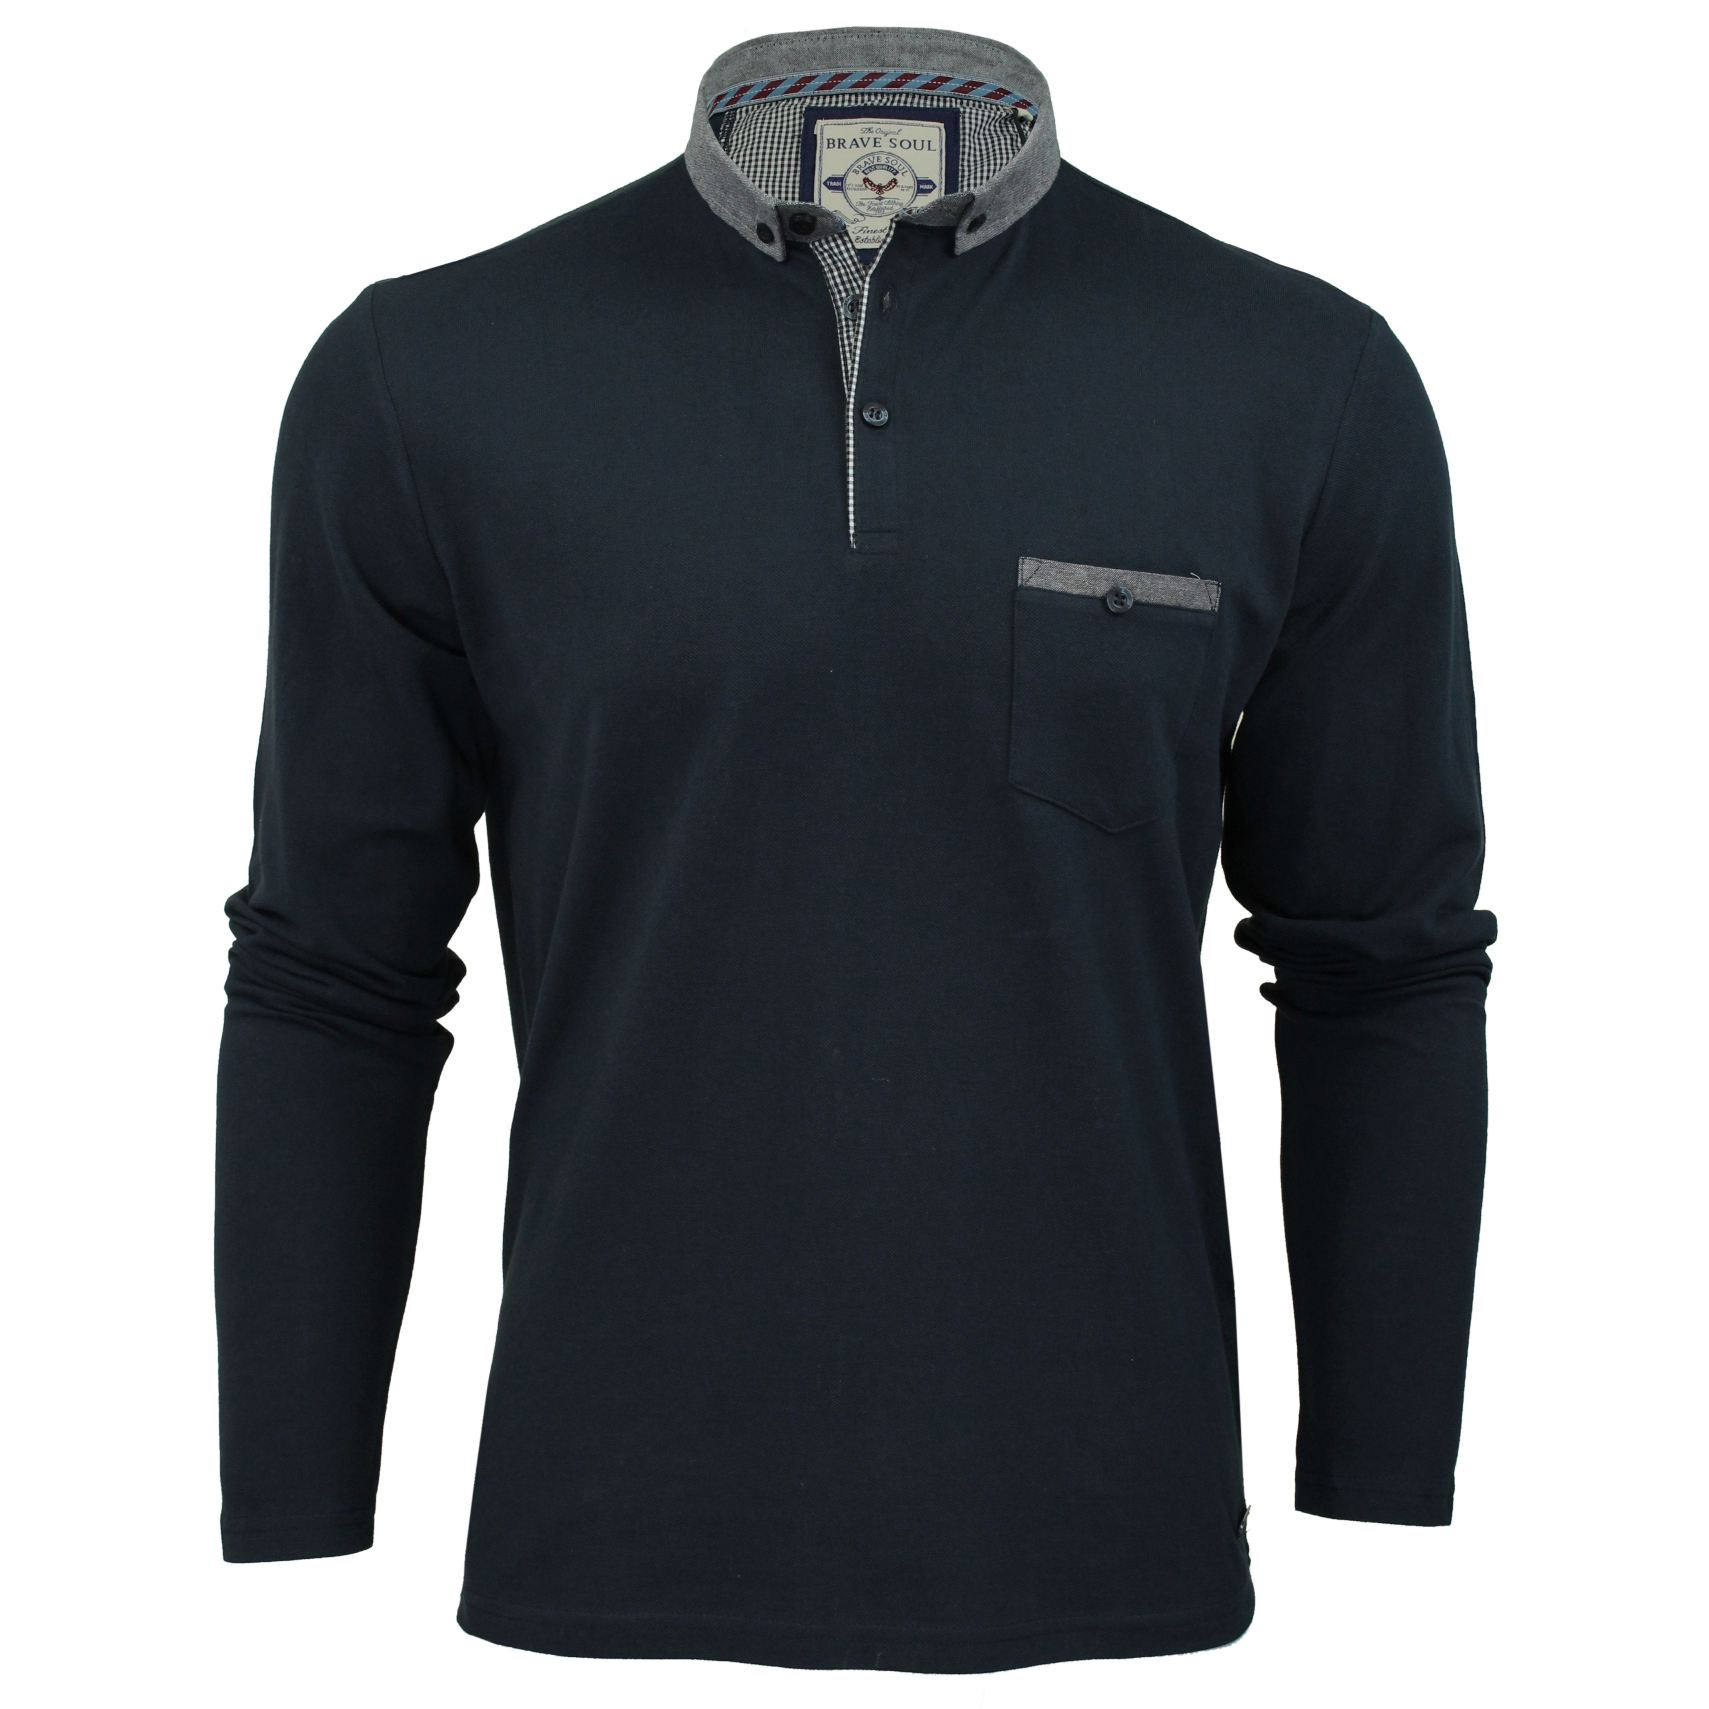 Mens-Polo-T-Shirt-by-Brave-Soul-039-Lincoln-039-Pique-Long-Sleeved